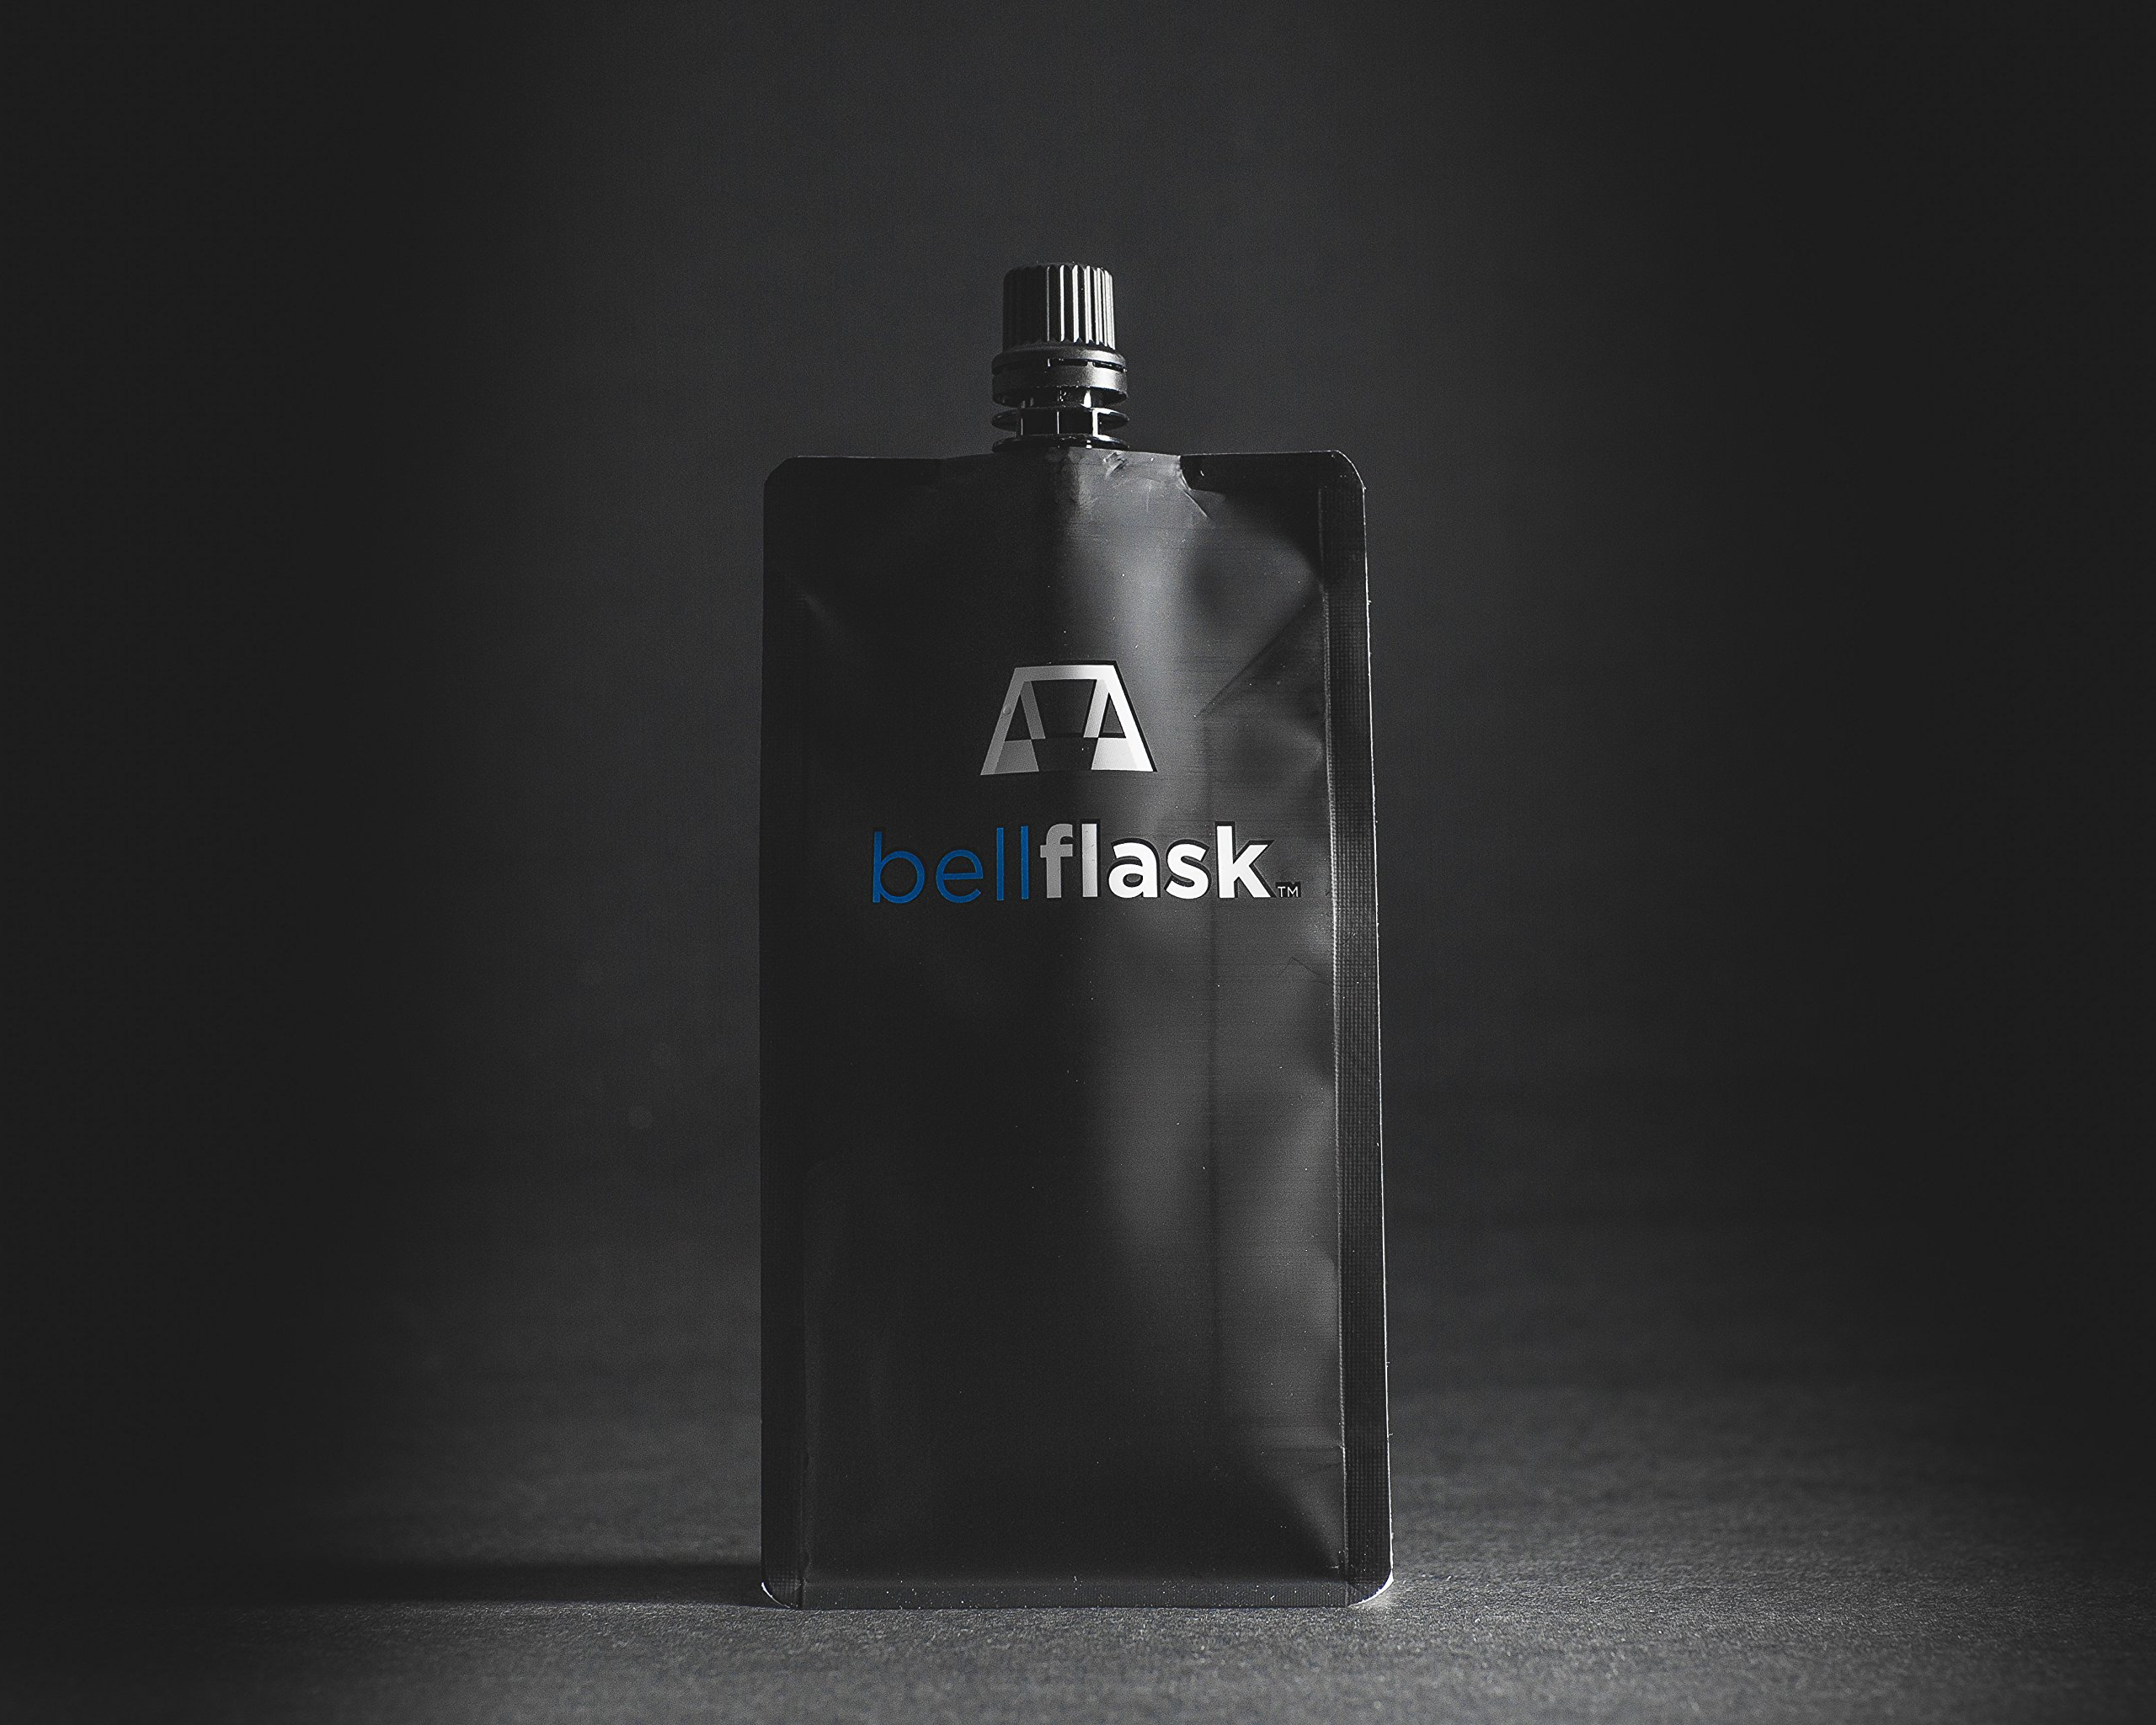 BellFlask - 12 oz. Concealable, Flexible, Reusable, Best, Metal-Free Pack of Five Flasks by BellFlask (Image #2)